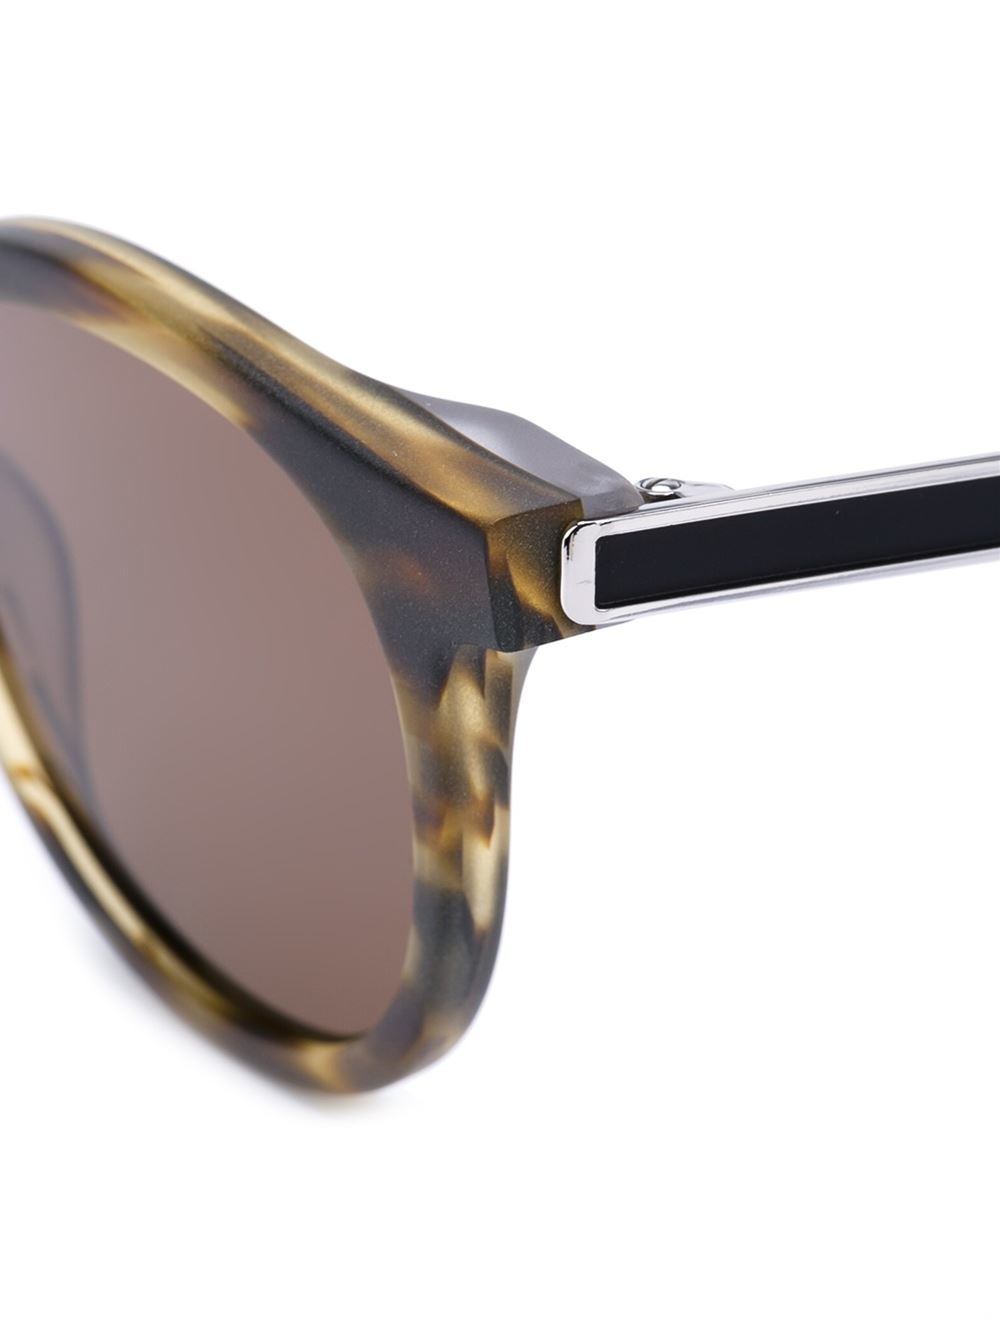 Lyst - Thierry Lasry Round Frame Sunglasses in Brown